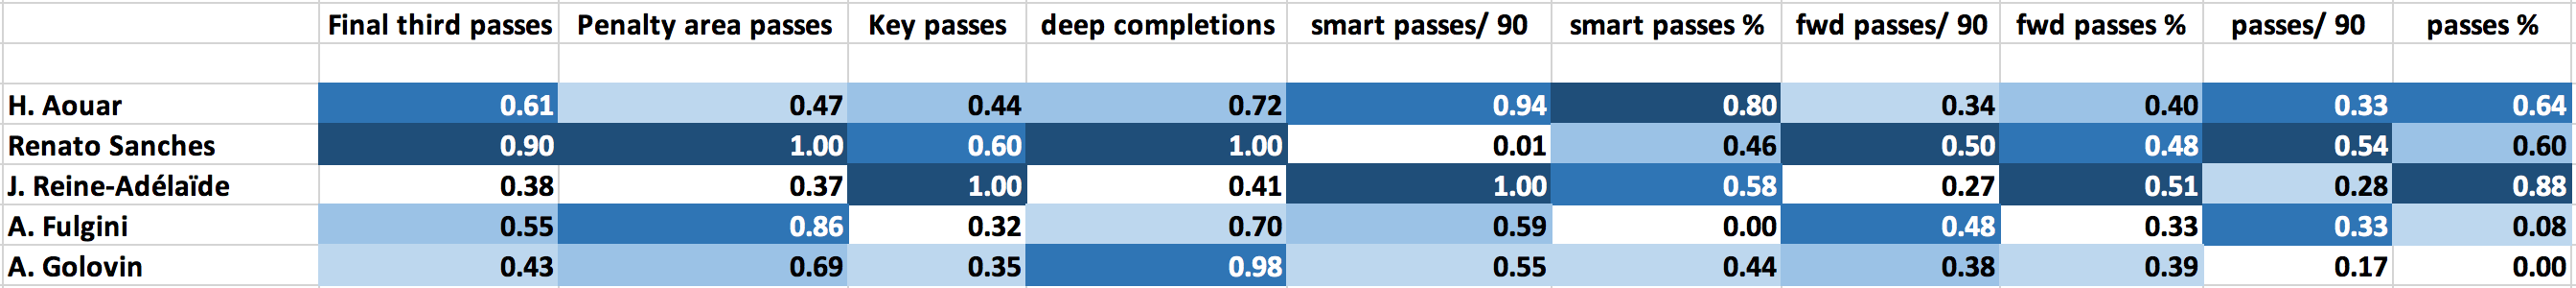 Finding the best young attacking midfielders in Ligue 1 - data analysis statistics